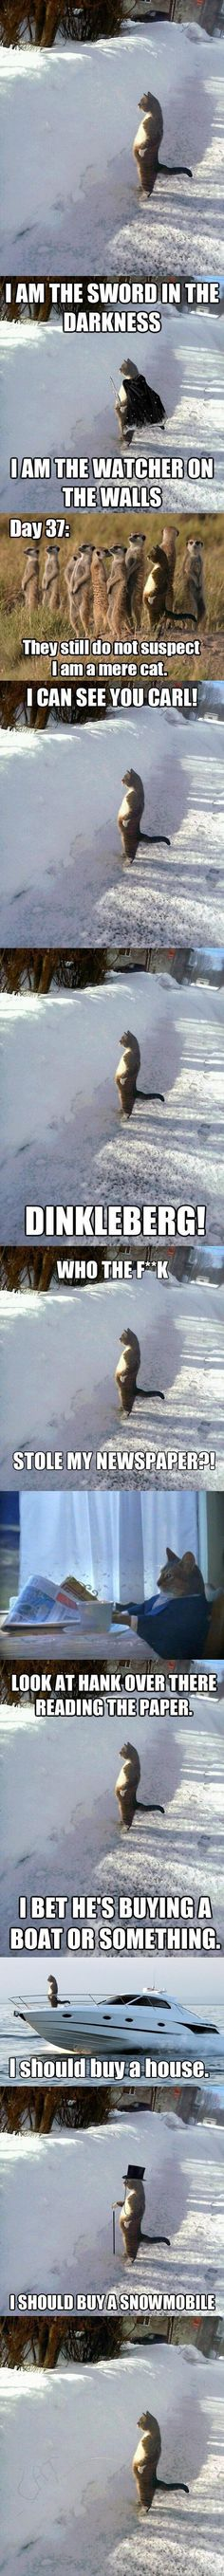 Best of Snowbank Cat. This made me laugh way harder than it should have.